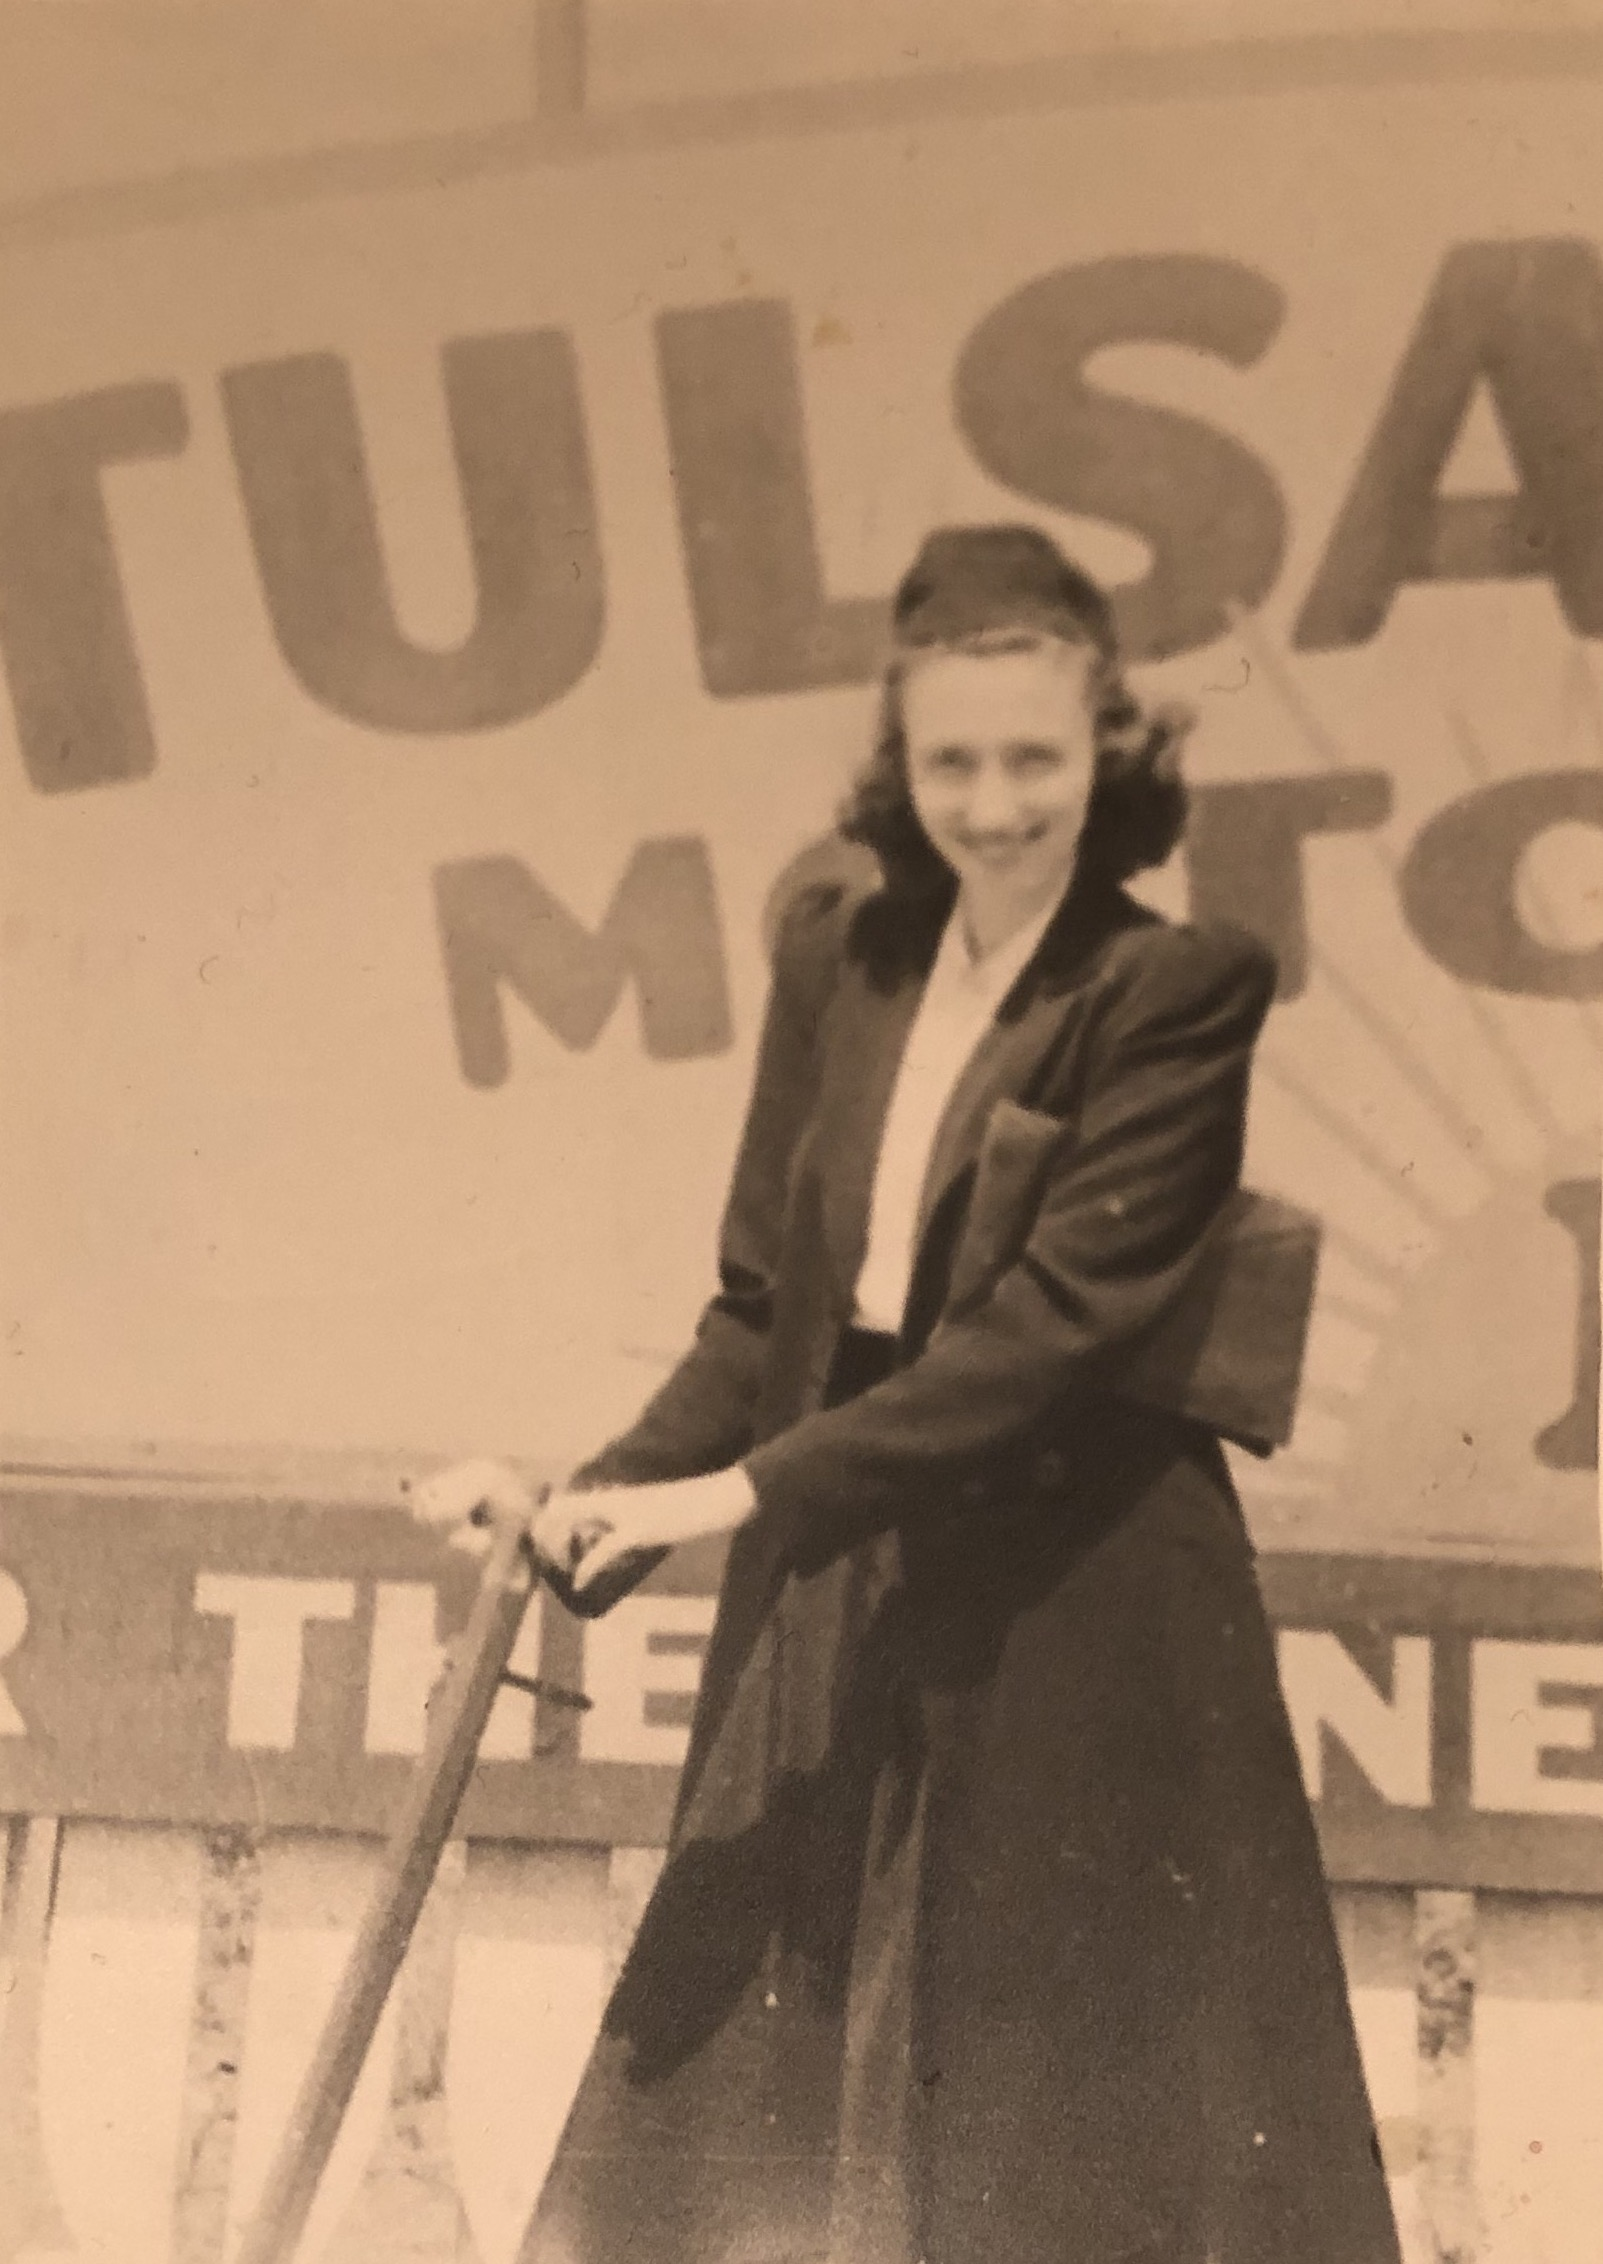 Ruth during her college years, 1936.